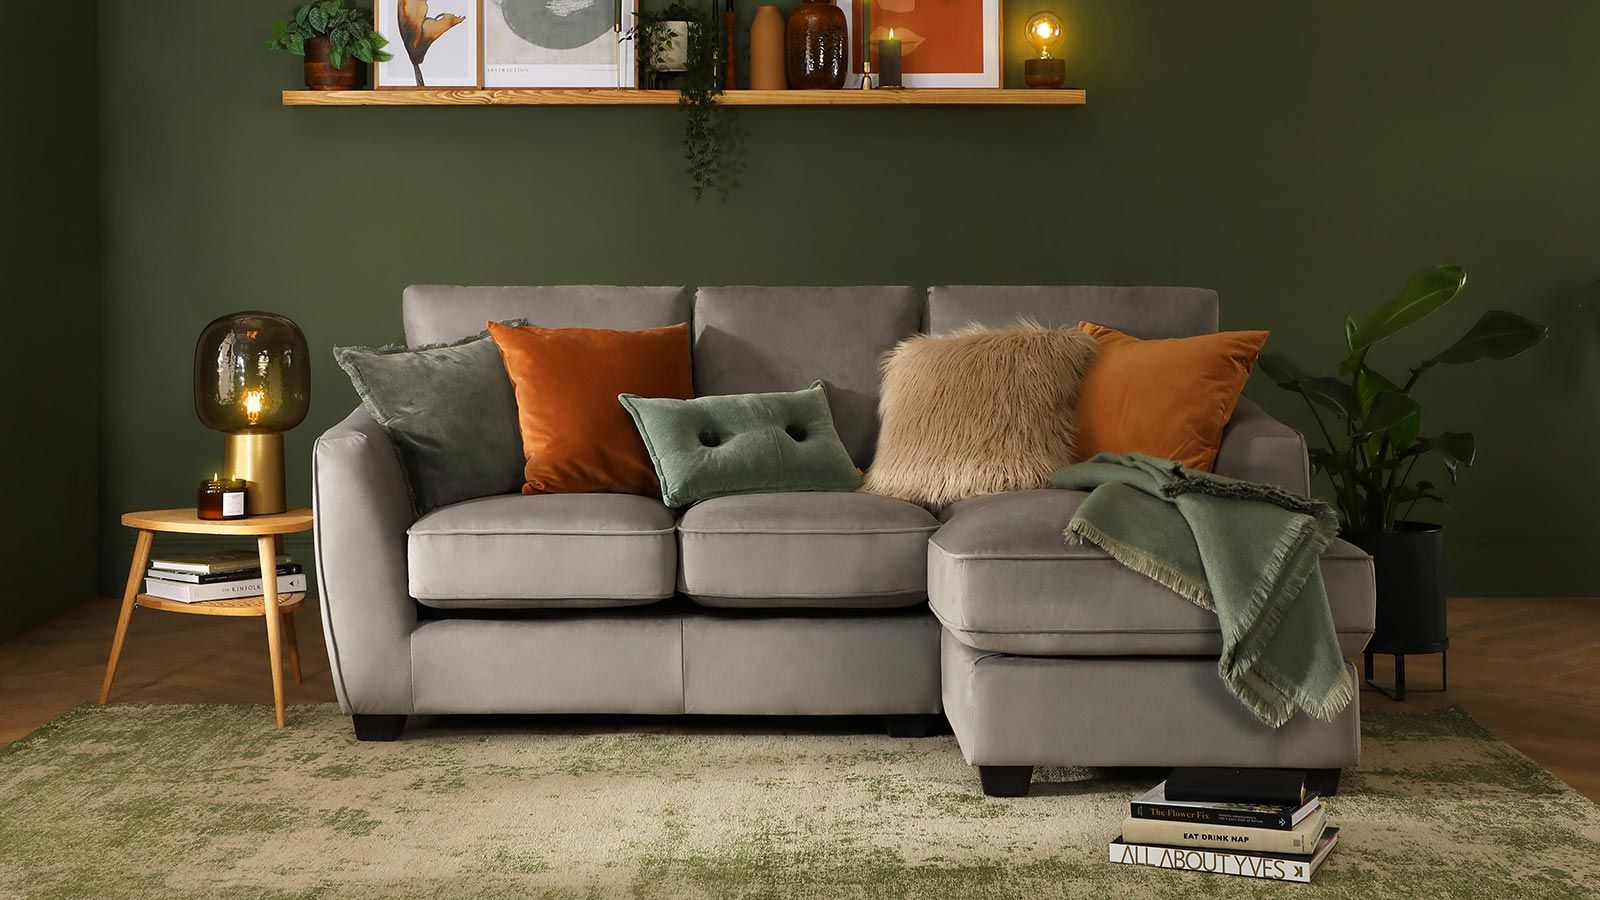 Furniture And Choice's Autumn sale - up to 50% off